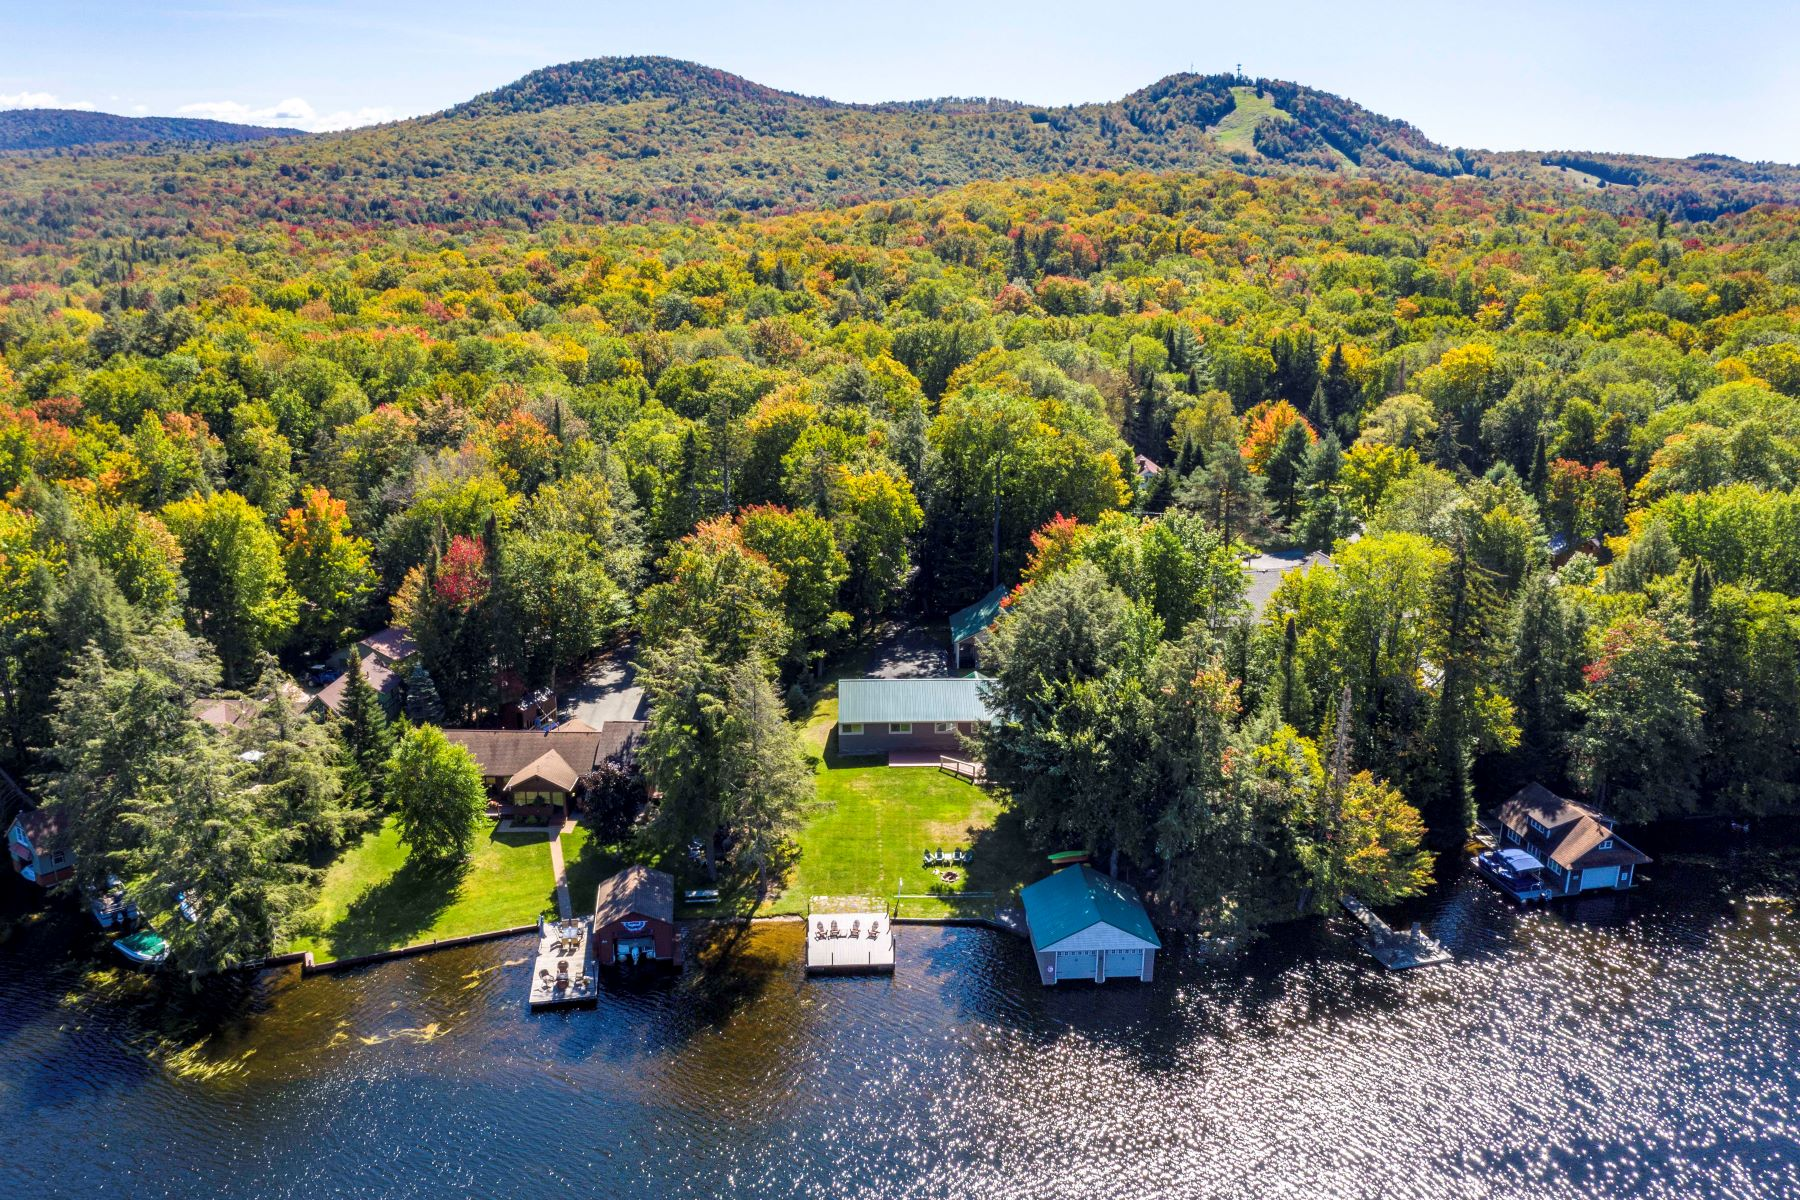 Single Family Homes für Verkauf beim Beautiful Waterfront Ranch Style Home 132 Creekside Lane, Old Forge, New York 13420 Vereinigte Staaten